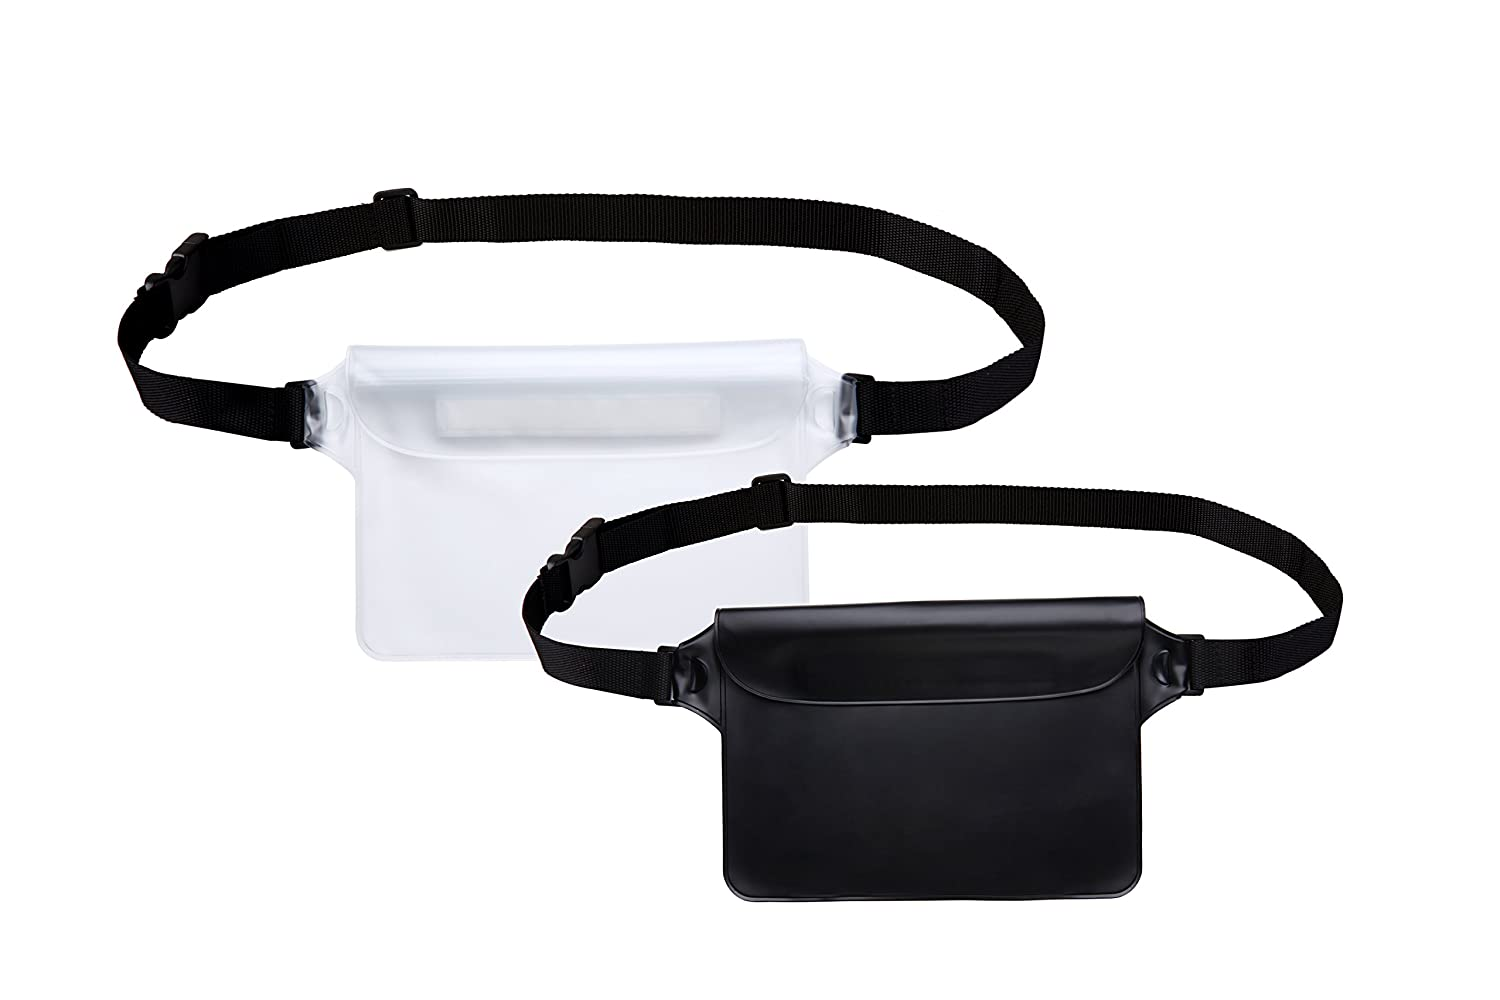 Best Way to Keep Your Phone and Valuables Safe and Dry Perfect for Boating Swimming Snorkeling Kayaking Beach Pool Water Parks White Outlander Waterproof Pouch with Waist Strap